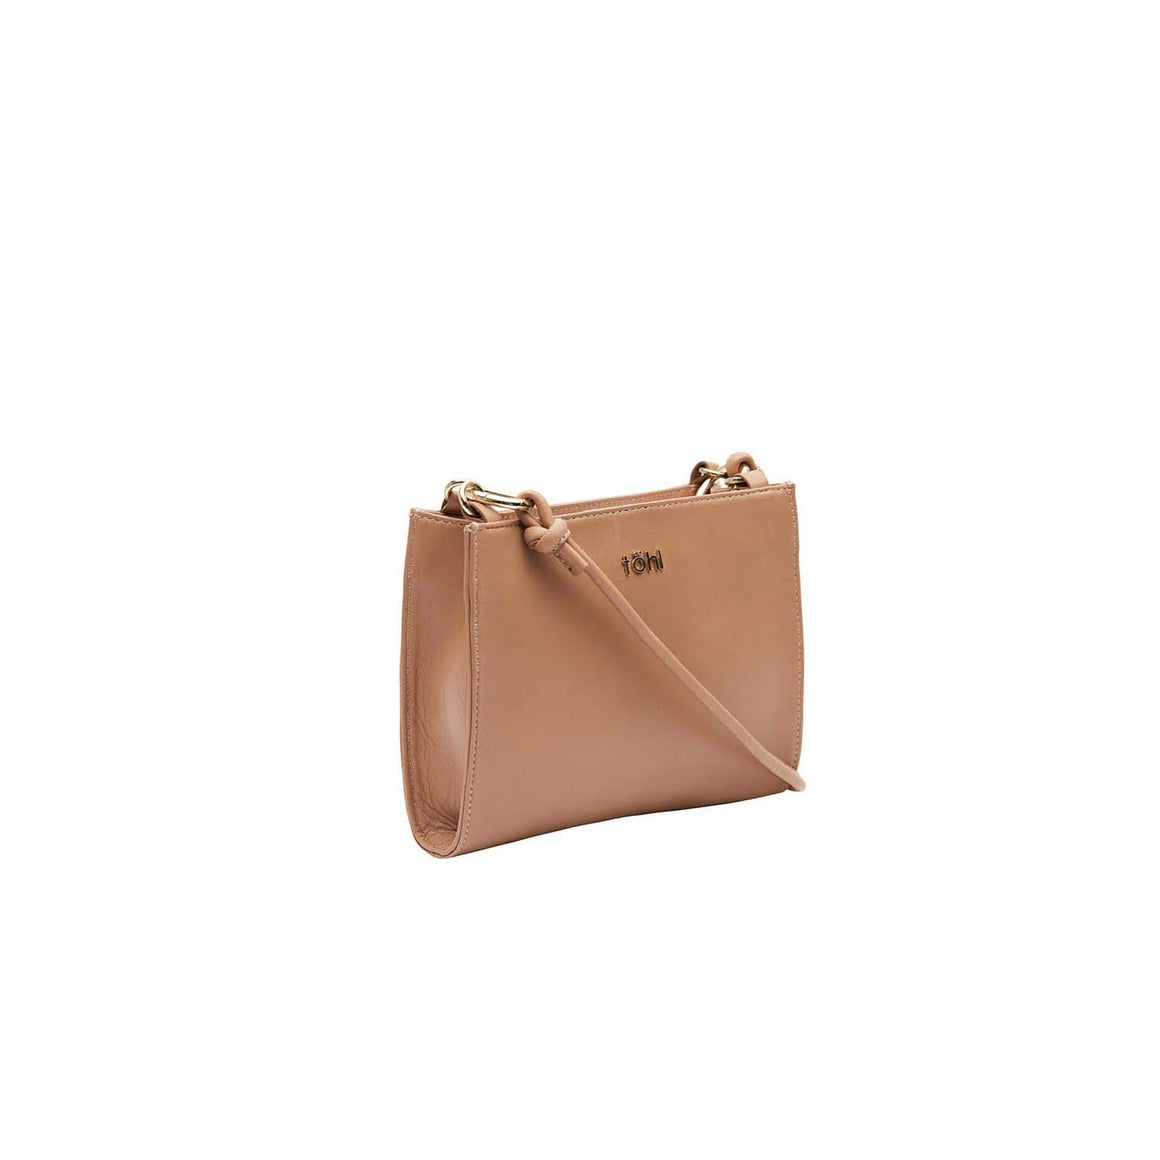 SG 0028 - TOHL BAYLIS WOMEN'S SLING & CROSSBODY BAG - NUDE